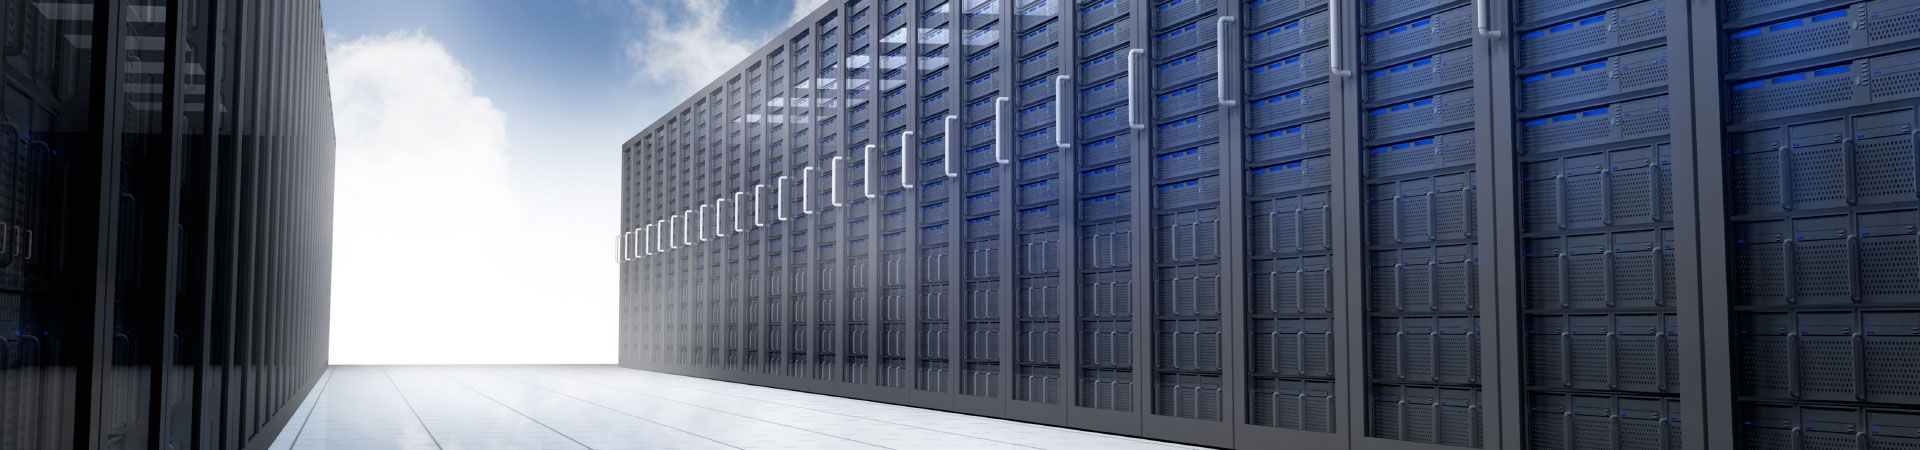 High-Performance Computing e cloud